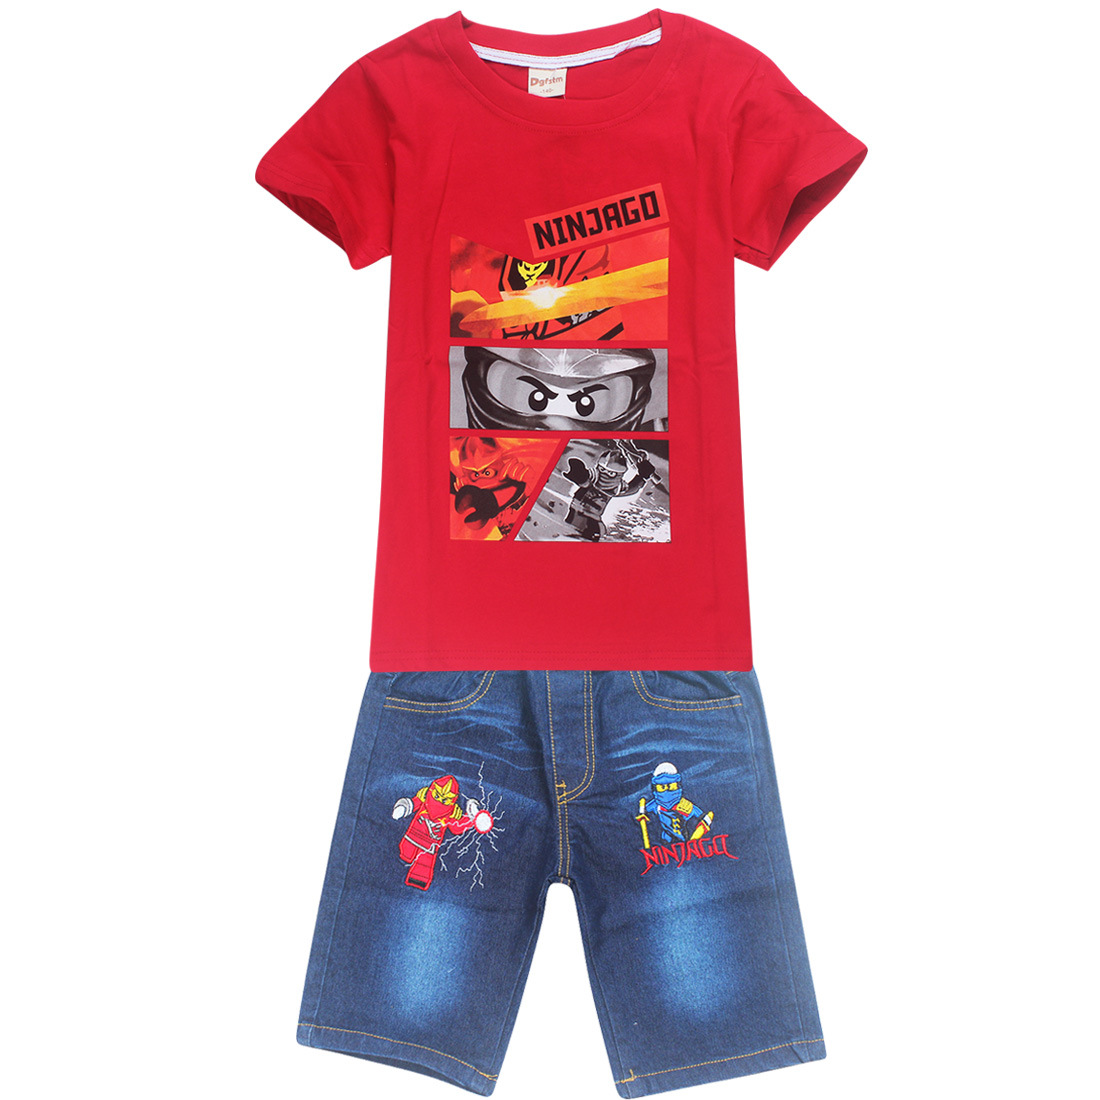 a142be56376af Children Ninjago Clothing Sets Costumes For Boys Clothes Summer Toddler  T-shirt+Jeans For Sport ...